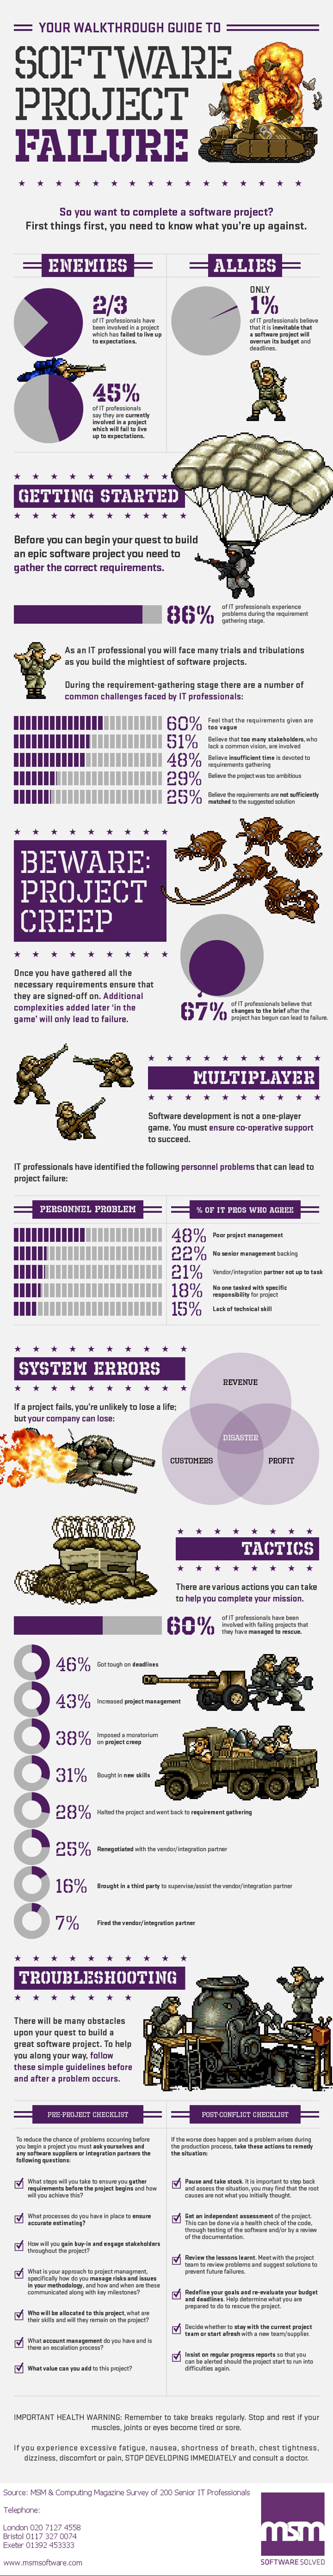 a-guide-to-preventing-software-project-failure_5093a102ee679